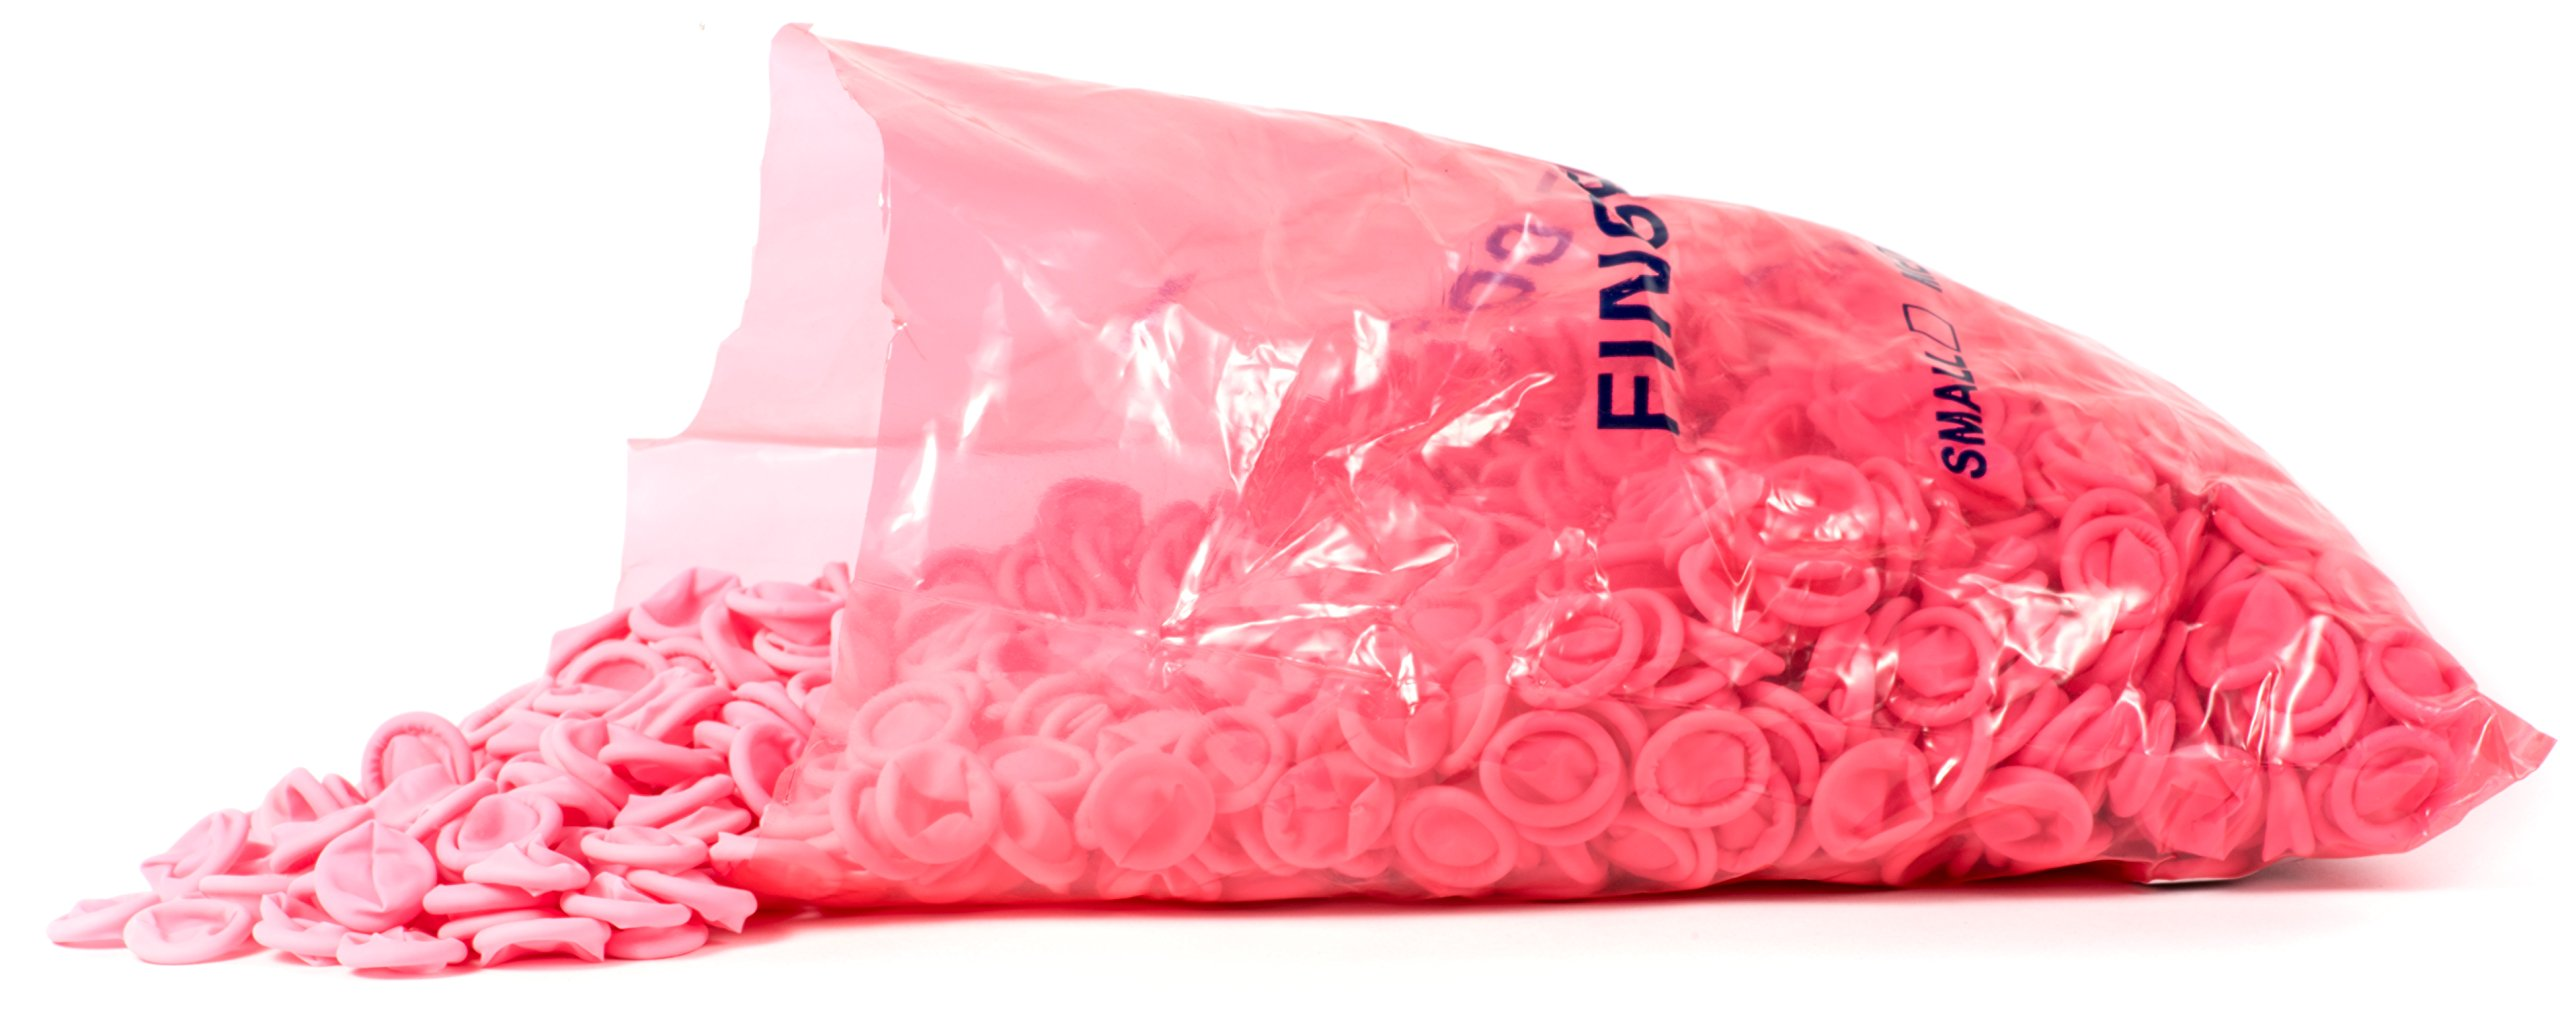 BKLJ,Finger Cots,ESD,Anti Static,Pink,Hospitals,Labs,Science,Clean Room,Nail Care,Salon Technician,Thimble,Protection, Sleeve,Health & Household,Powder Free,Sterile,1440 per bag,Latex, Medium by BKLJ (Image #3)